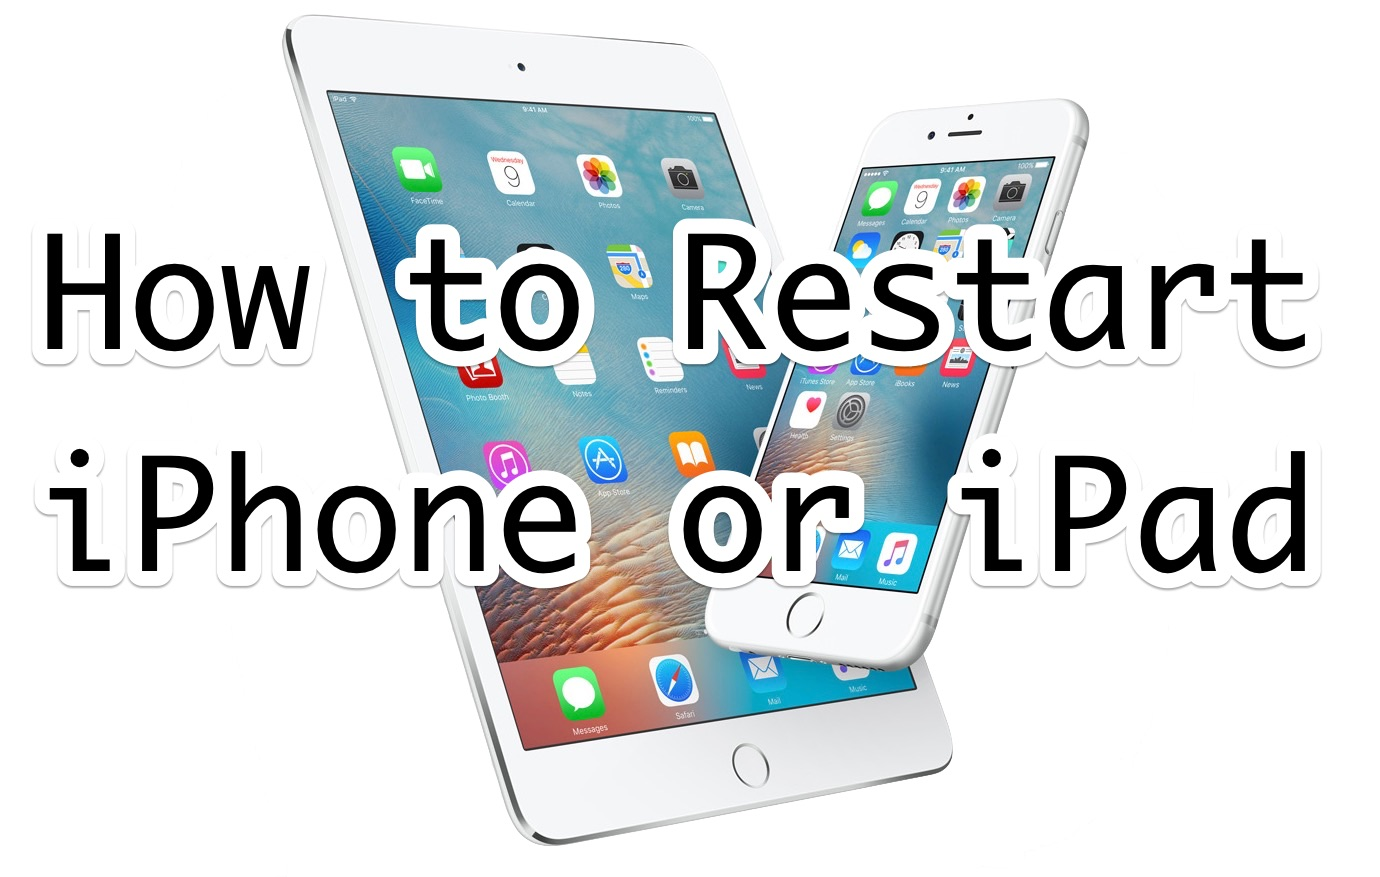 How to Restart iPhone or iPad